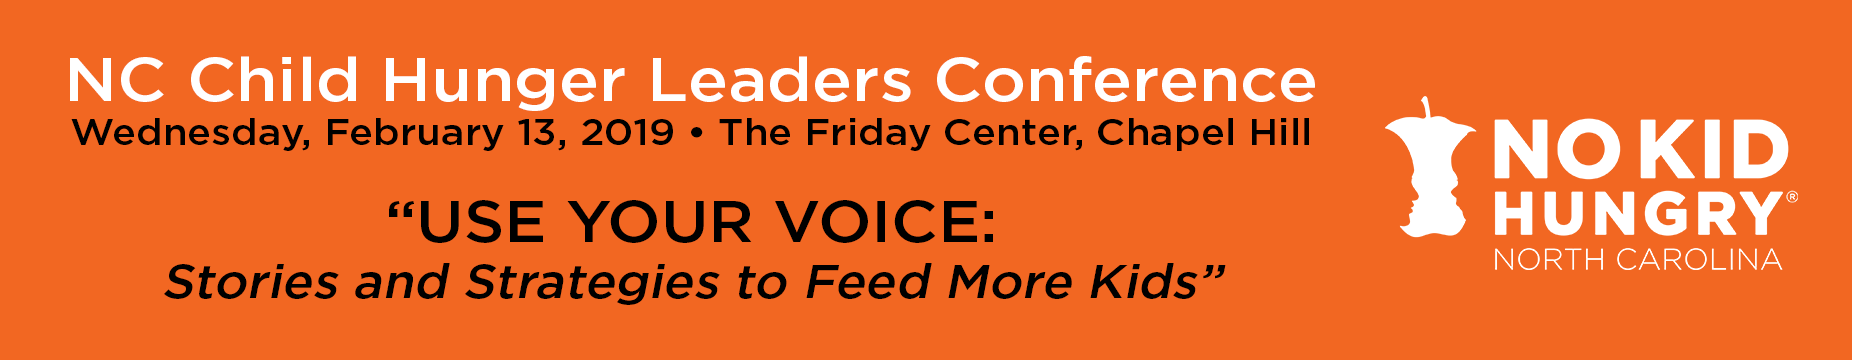 """2019 NC Child Hunger Leaders Conference: """"Use Your Voice: Stories and Strategies to Feed More Kids"""""""